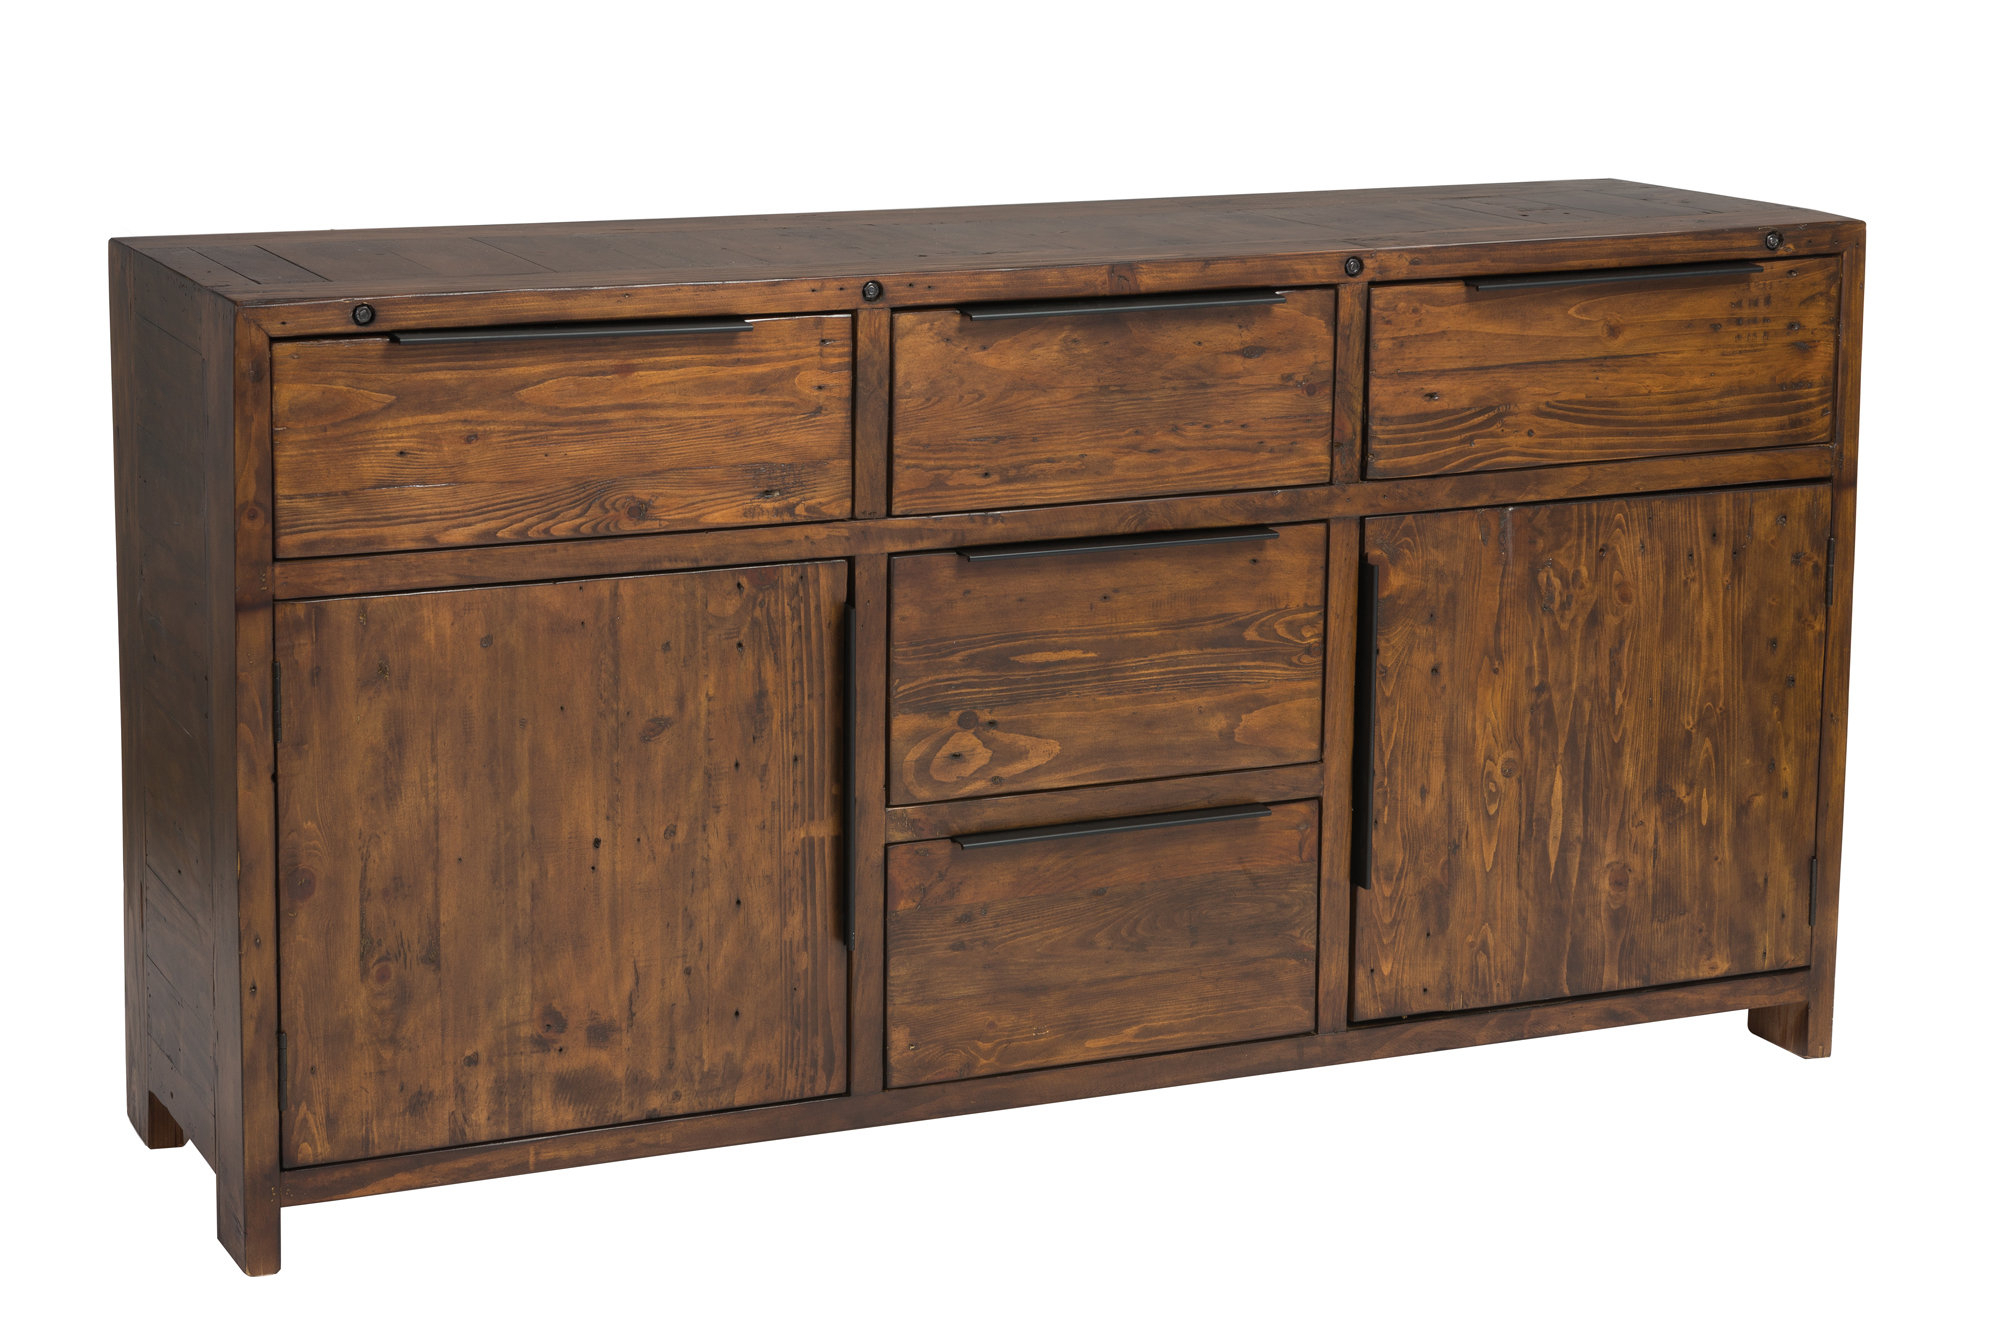 2020 Carisbrooke Sideboard With Sideboards By Foundry Select (Gallery 8 of 20)